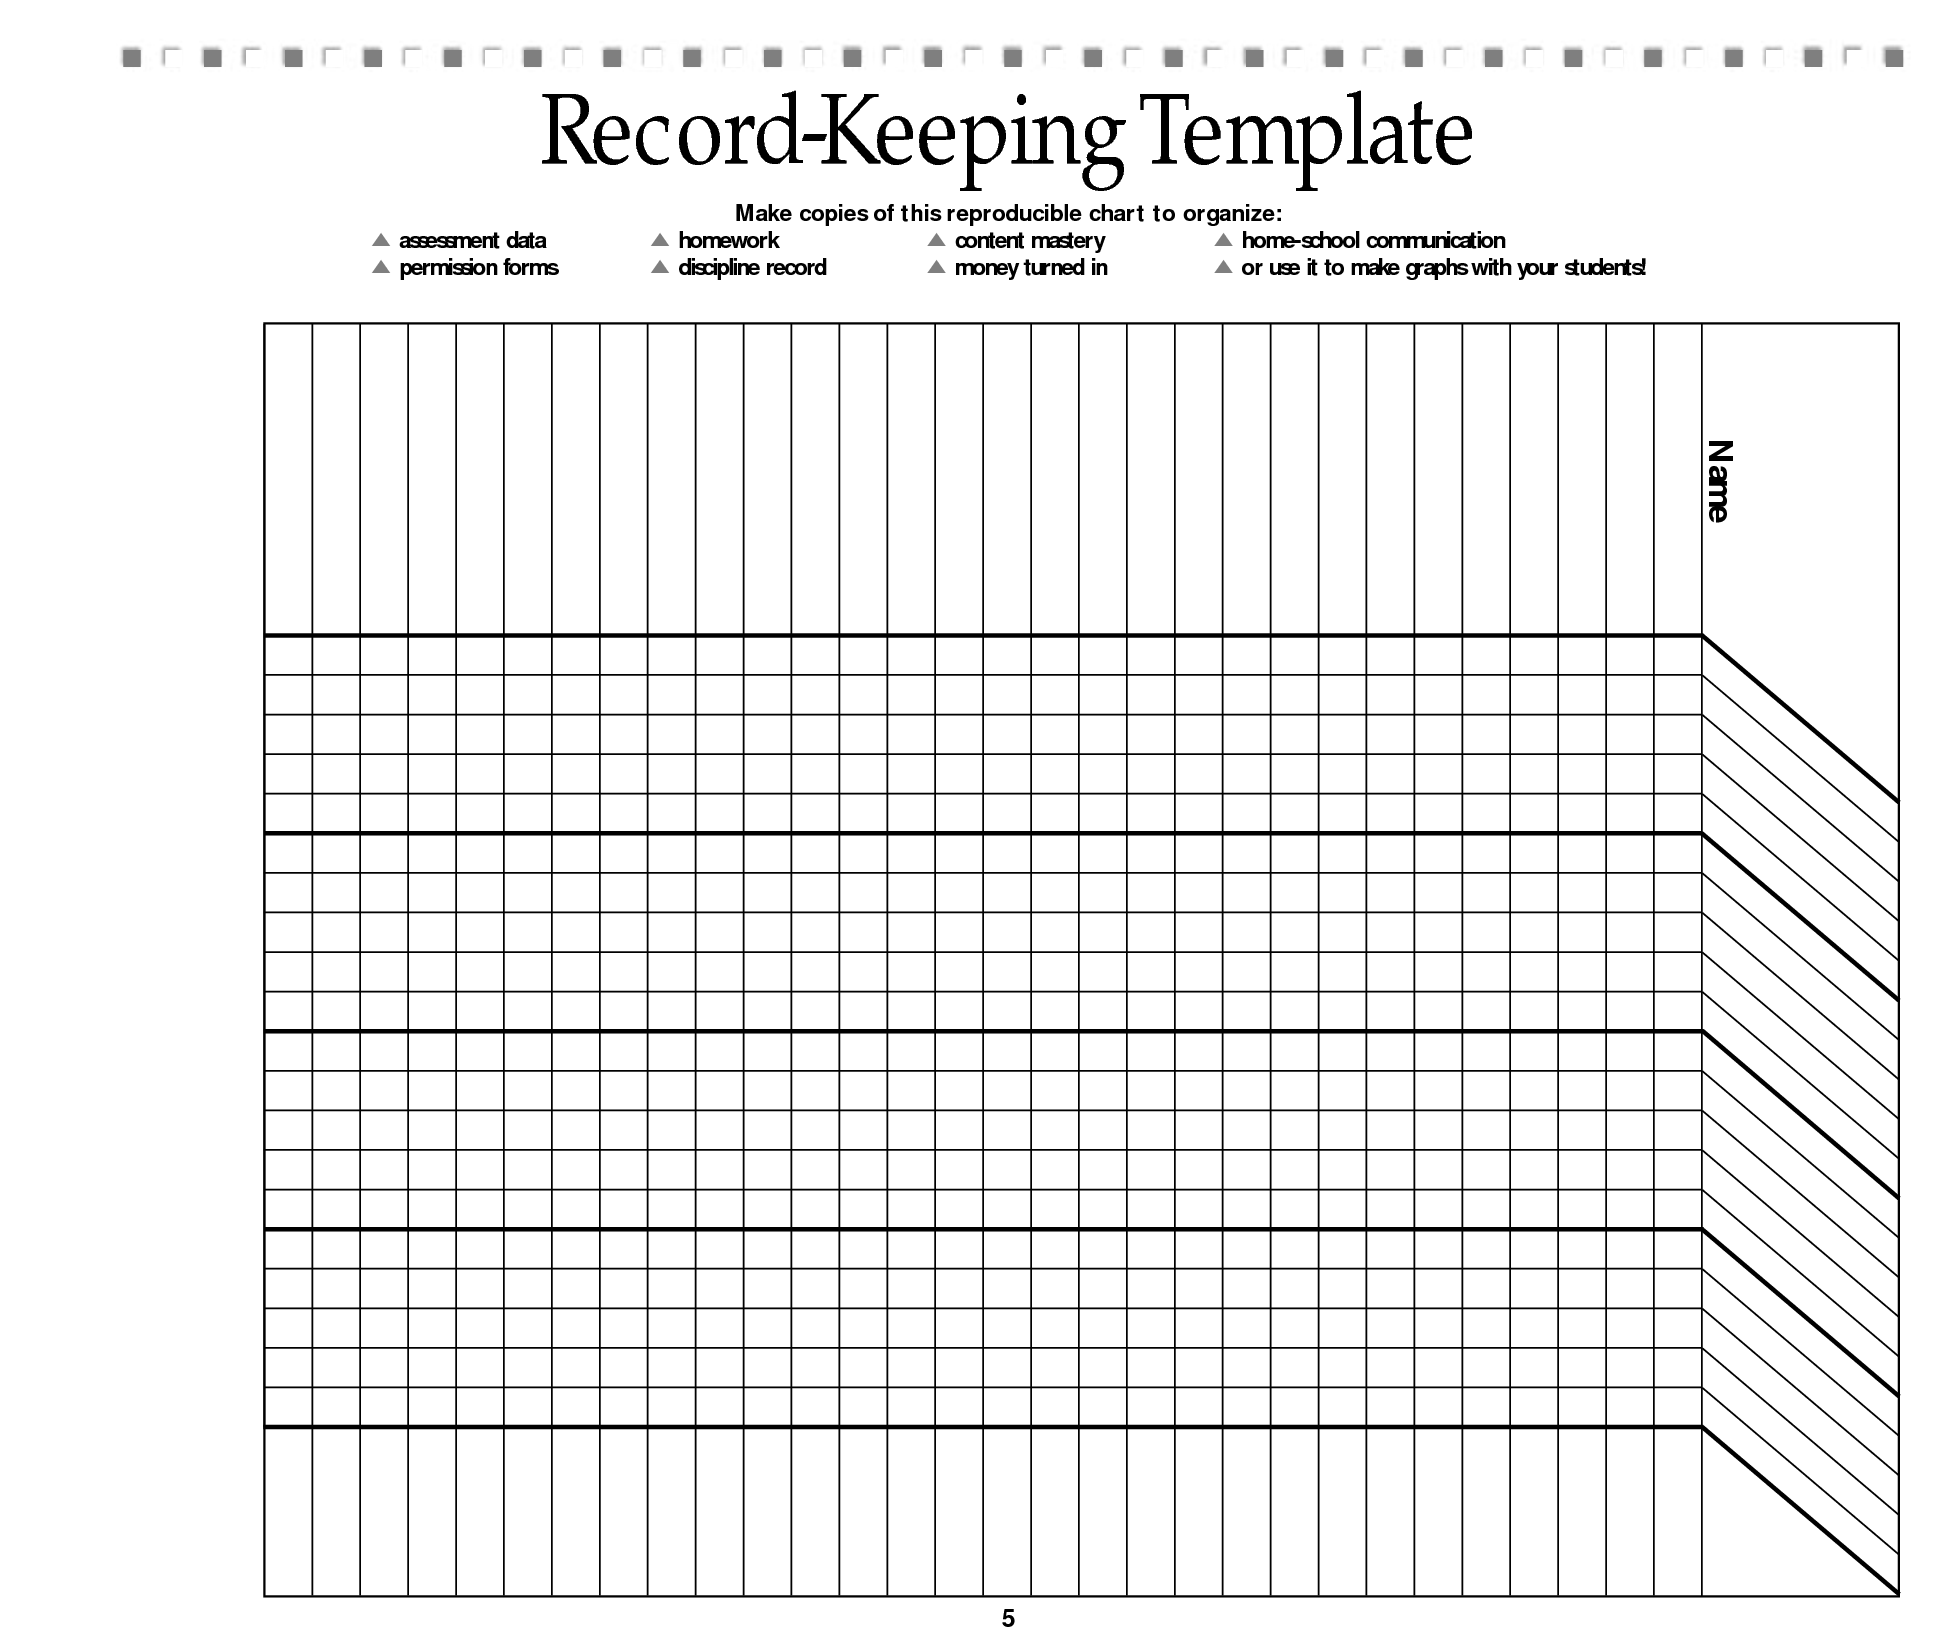 Intrepid image for free printable homeschool record keeping forms